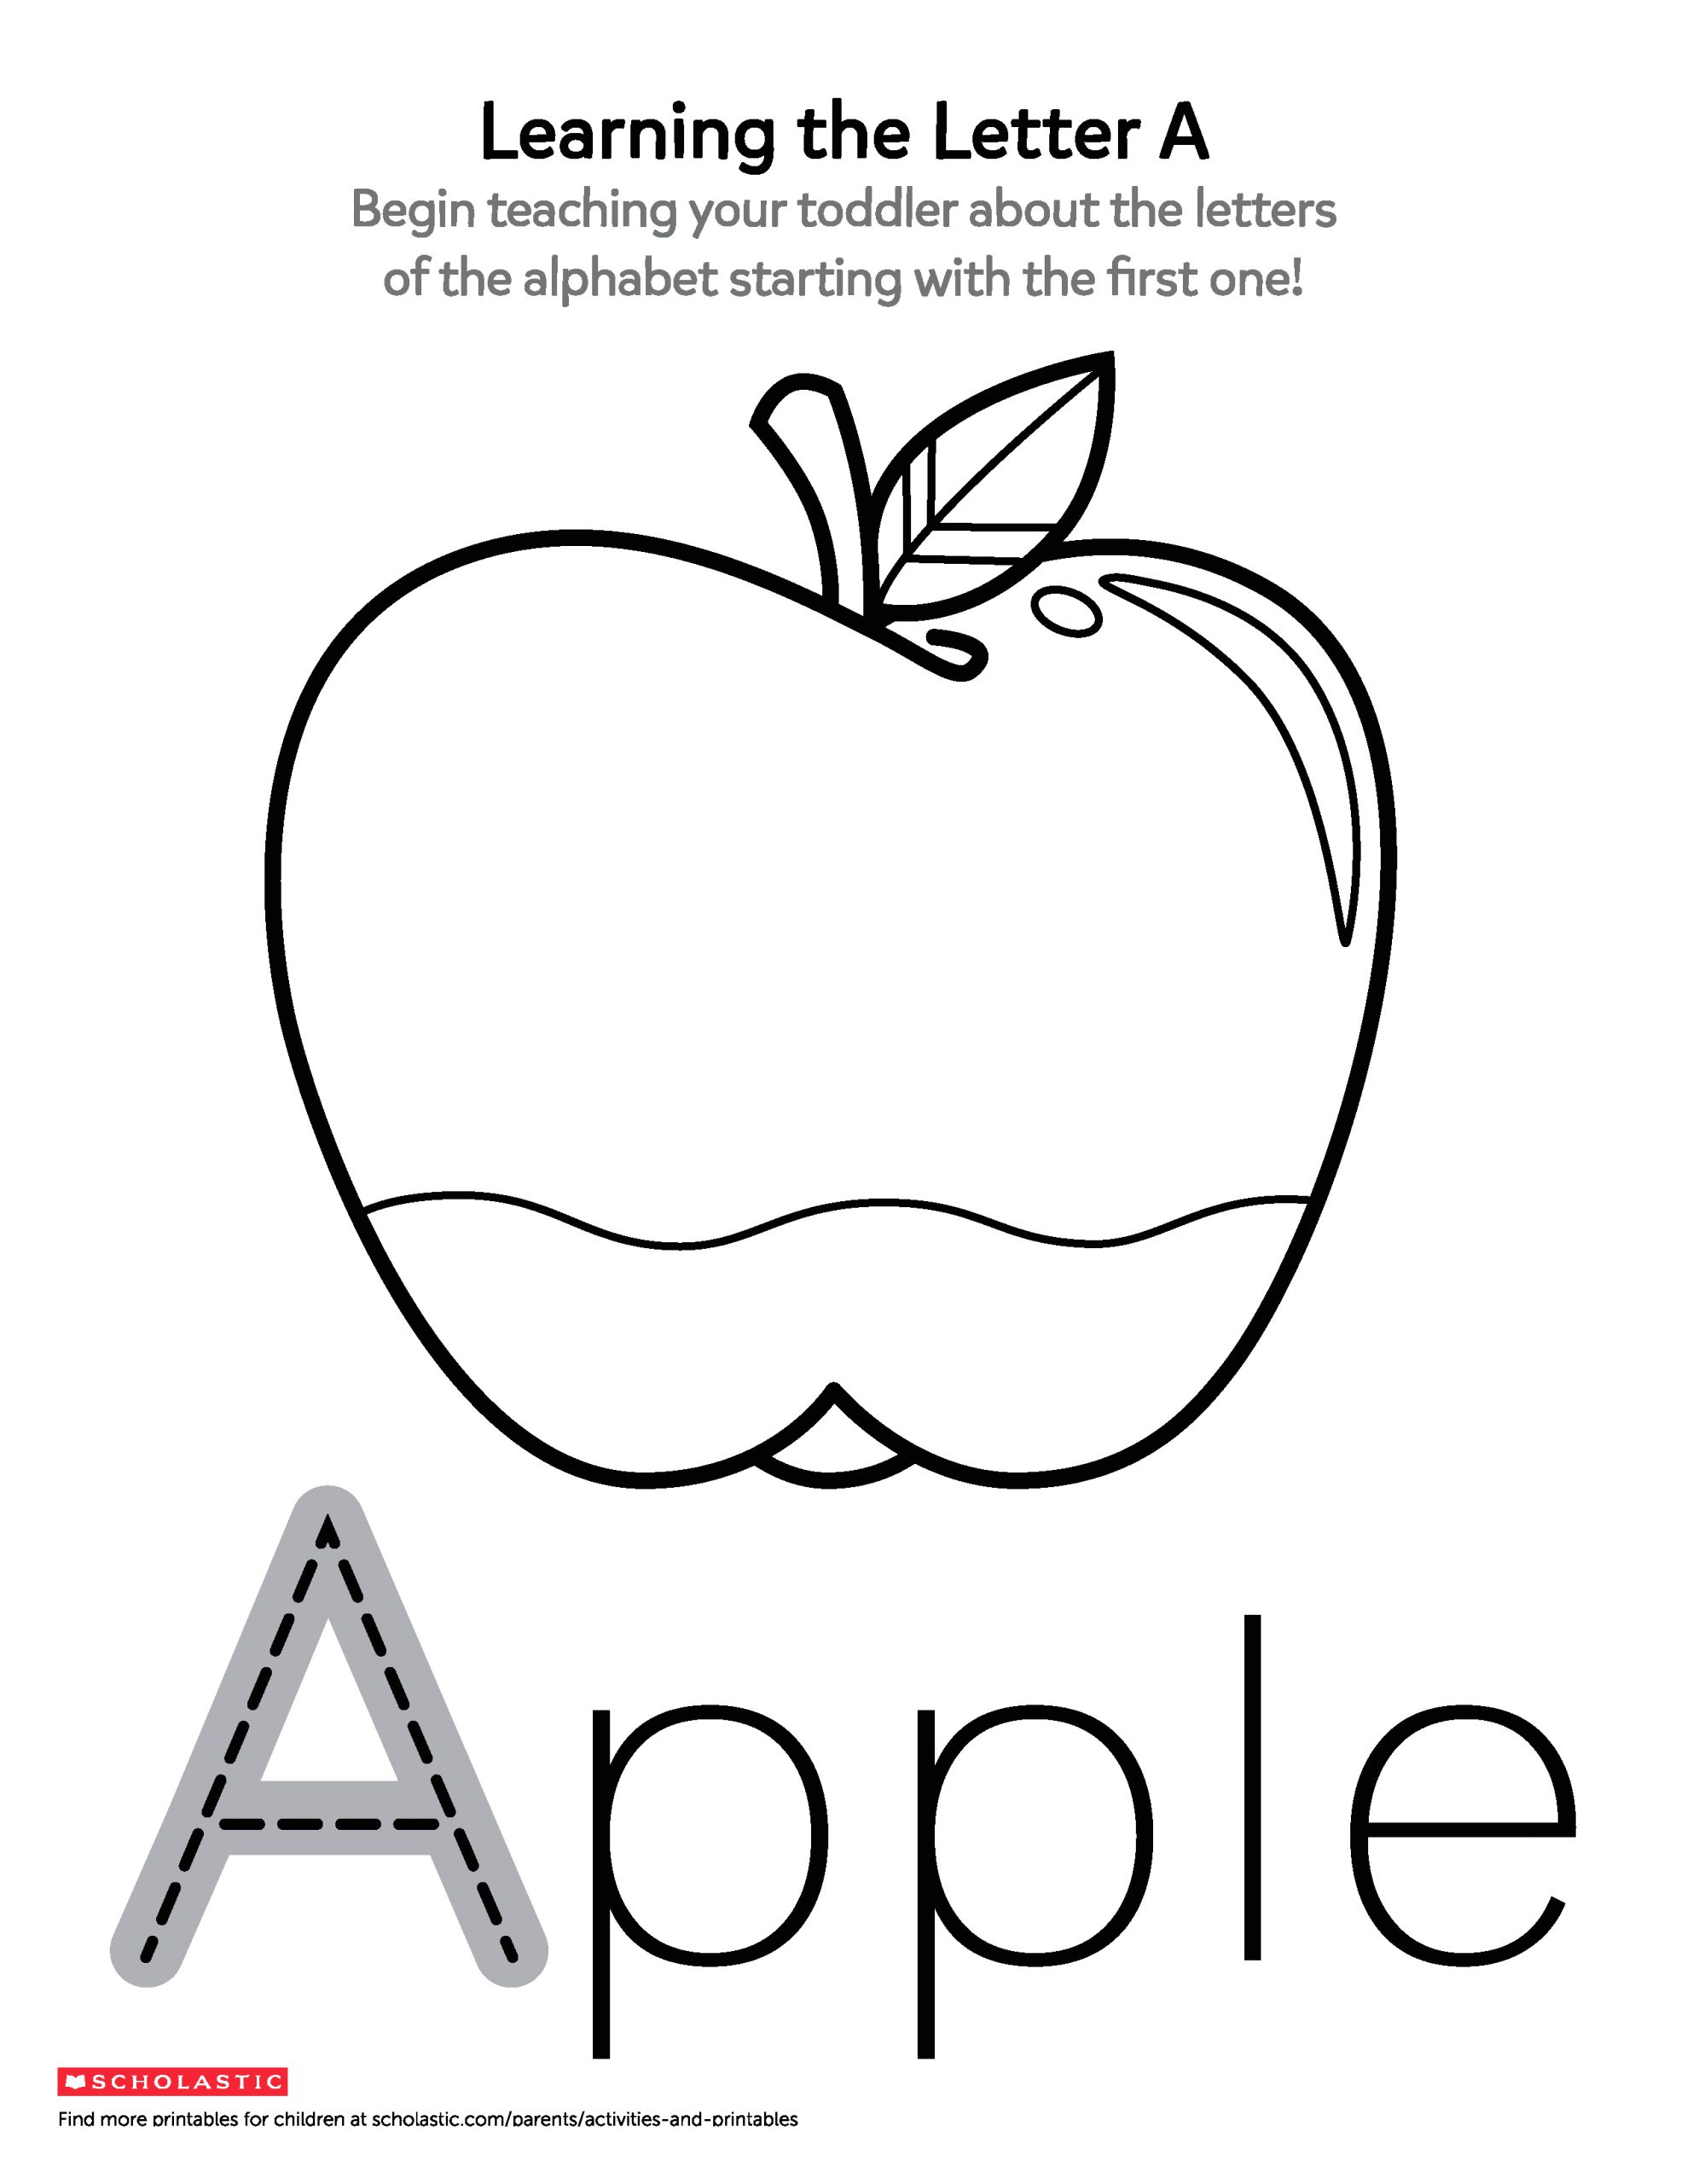 Alphabet Coloring Pages for 2 Year Olds Alphabet Coloring Pages for 2 Year Olds